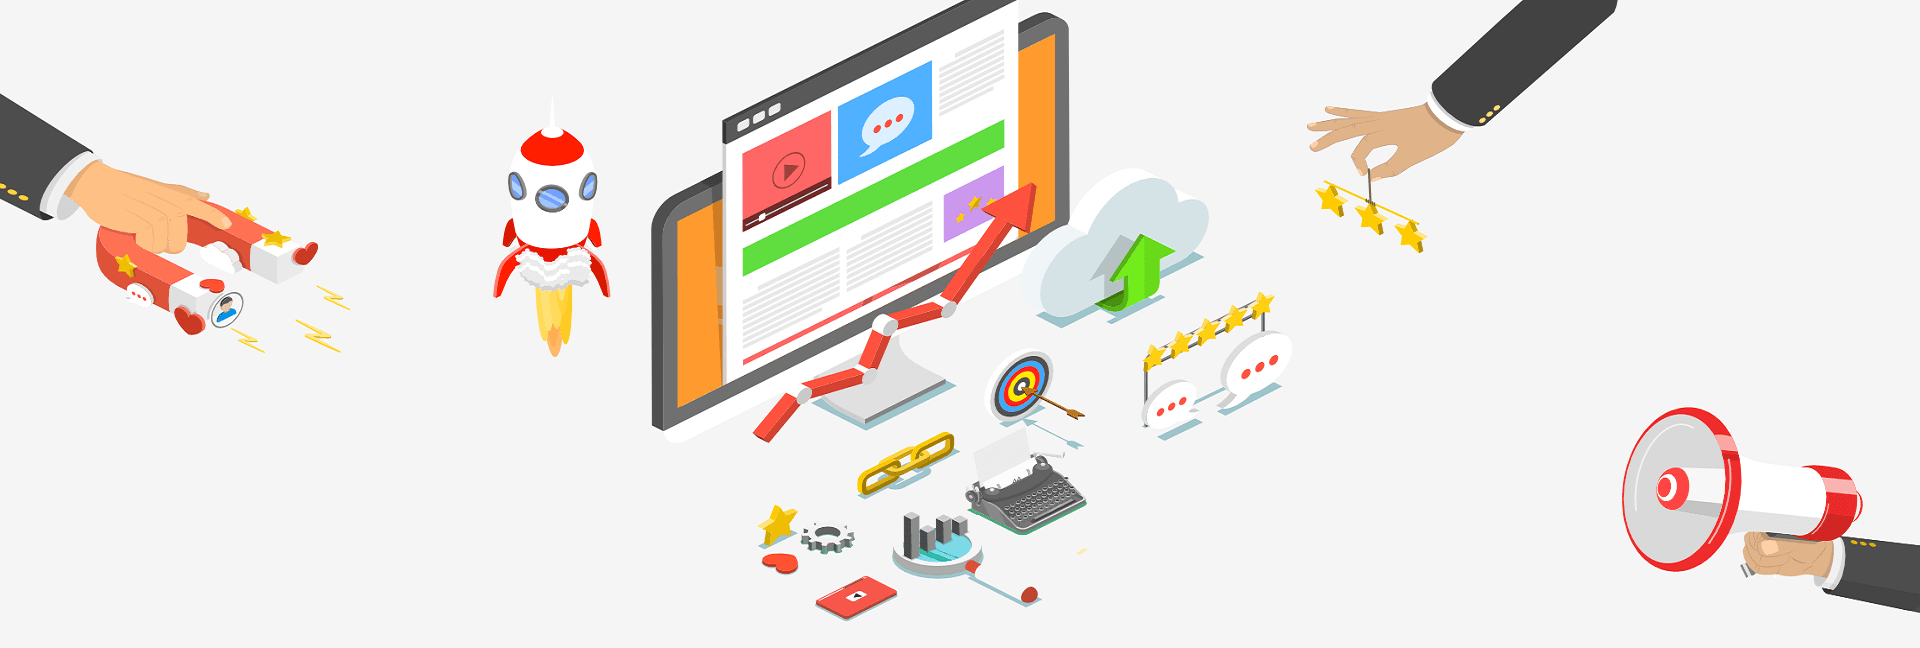 Six Tactics to Increase Conversion Rate on Newly Built Sites